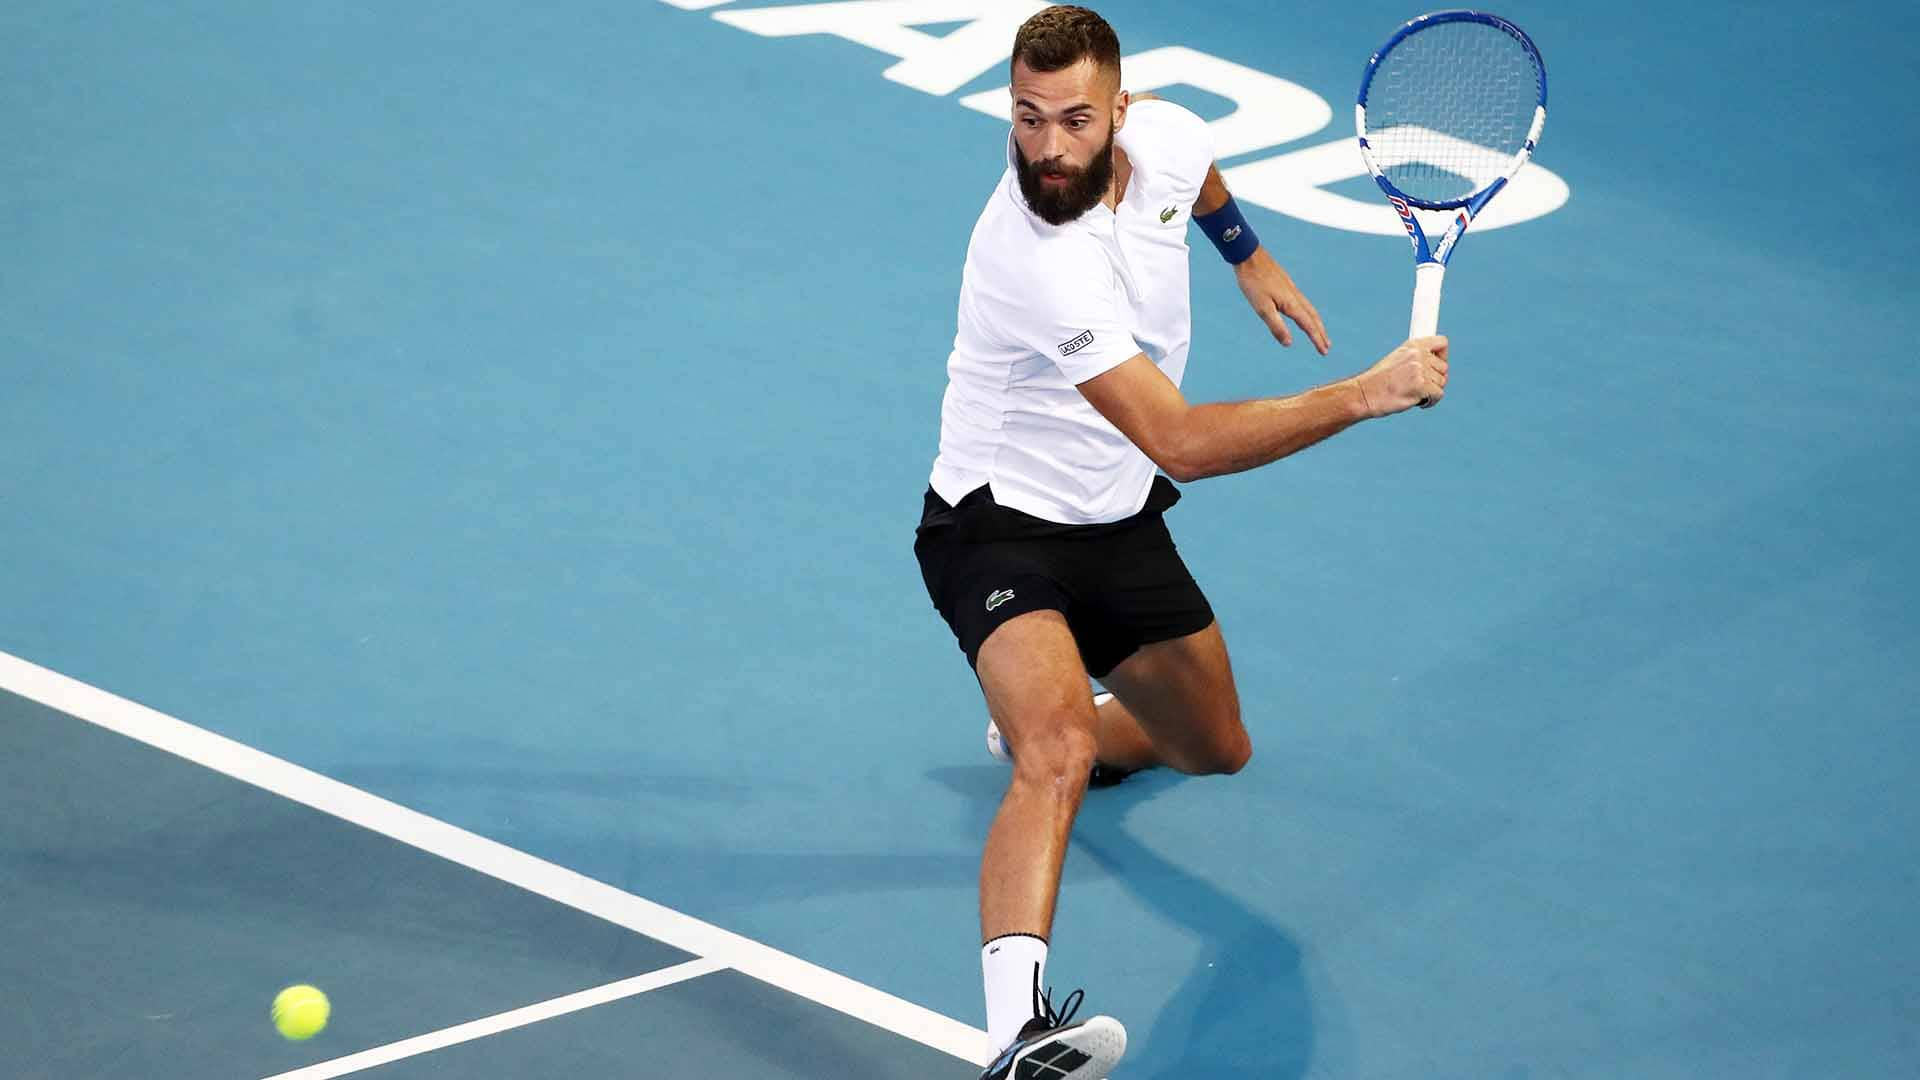 Benoit Paire is through to his ninth ATP Tour championship match.